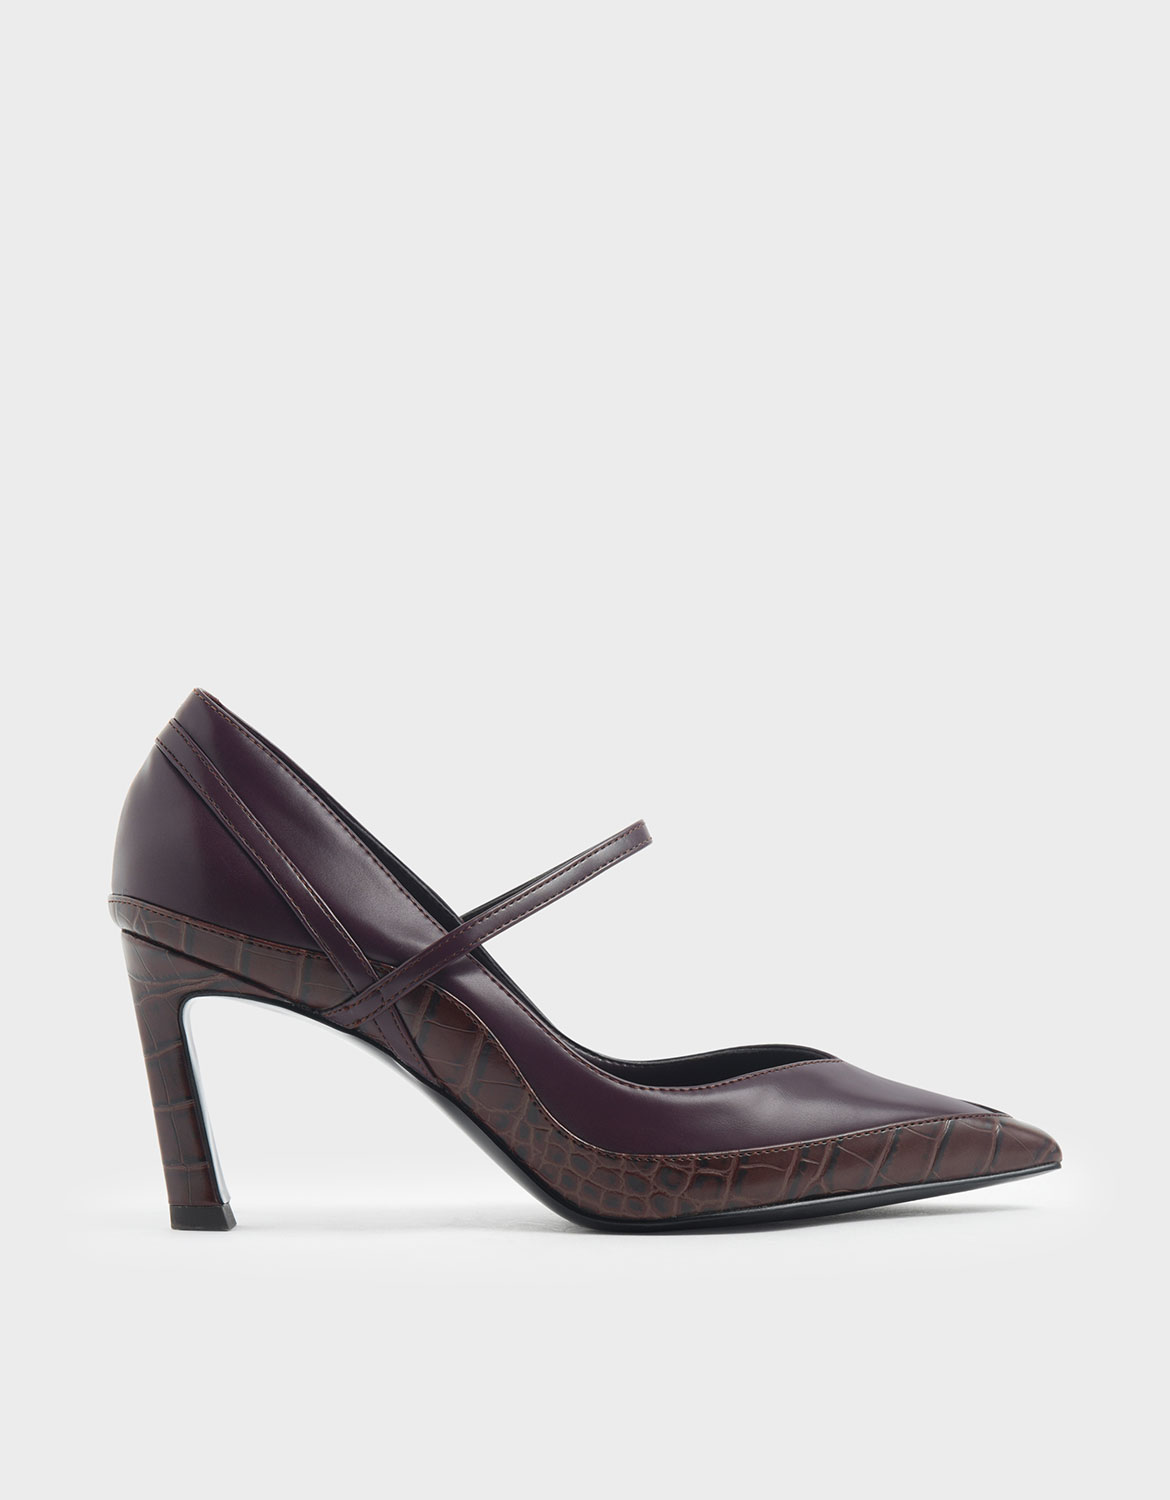 Charles & Keith Croc-Effect Pointed Toe Mary Jane Sculptural Heels